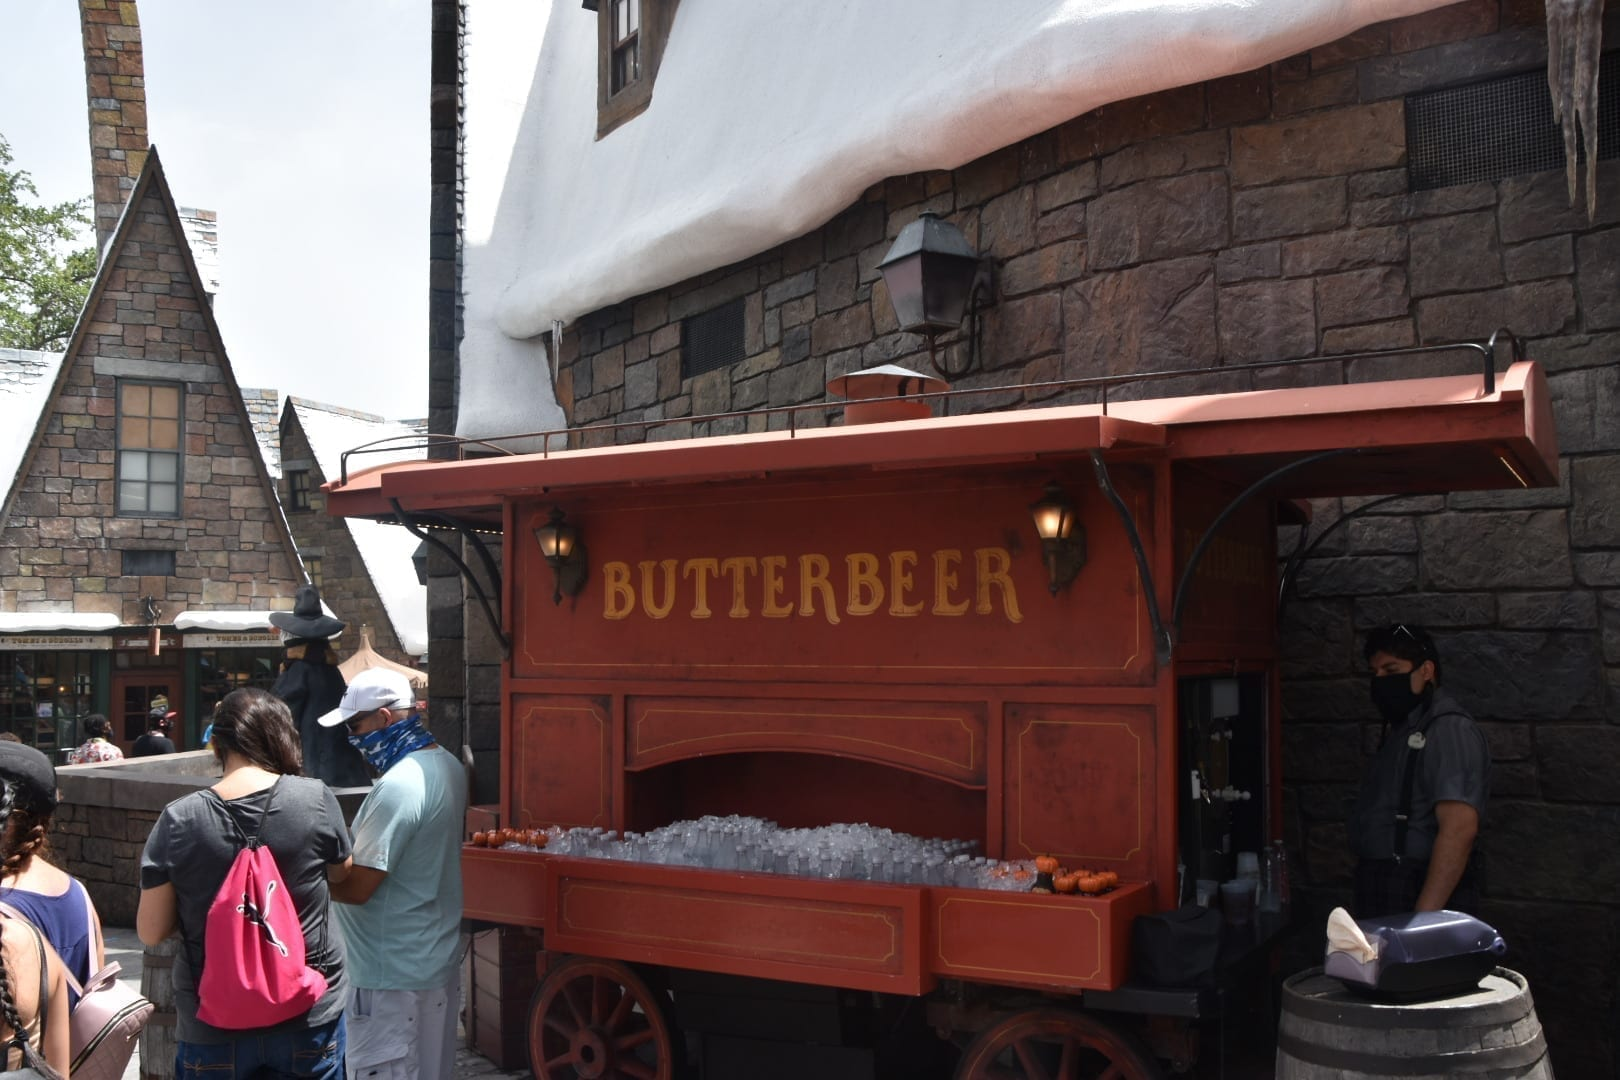 Harry Potter Souvenir Butter beer